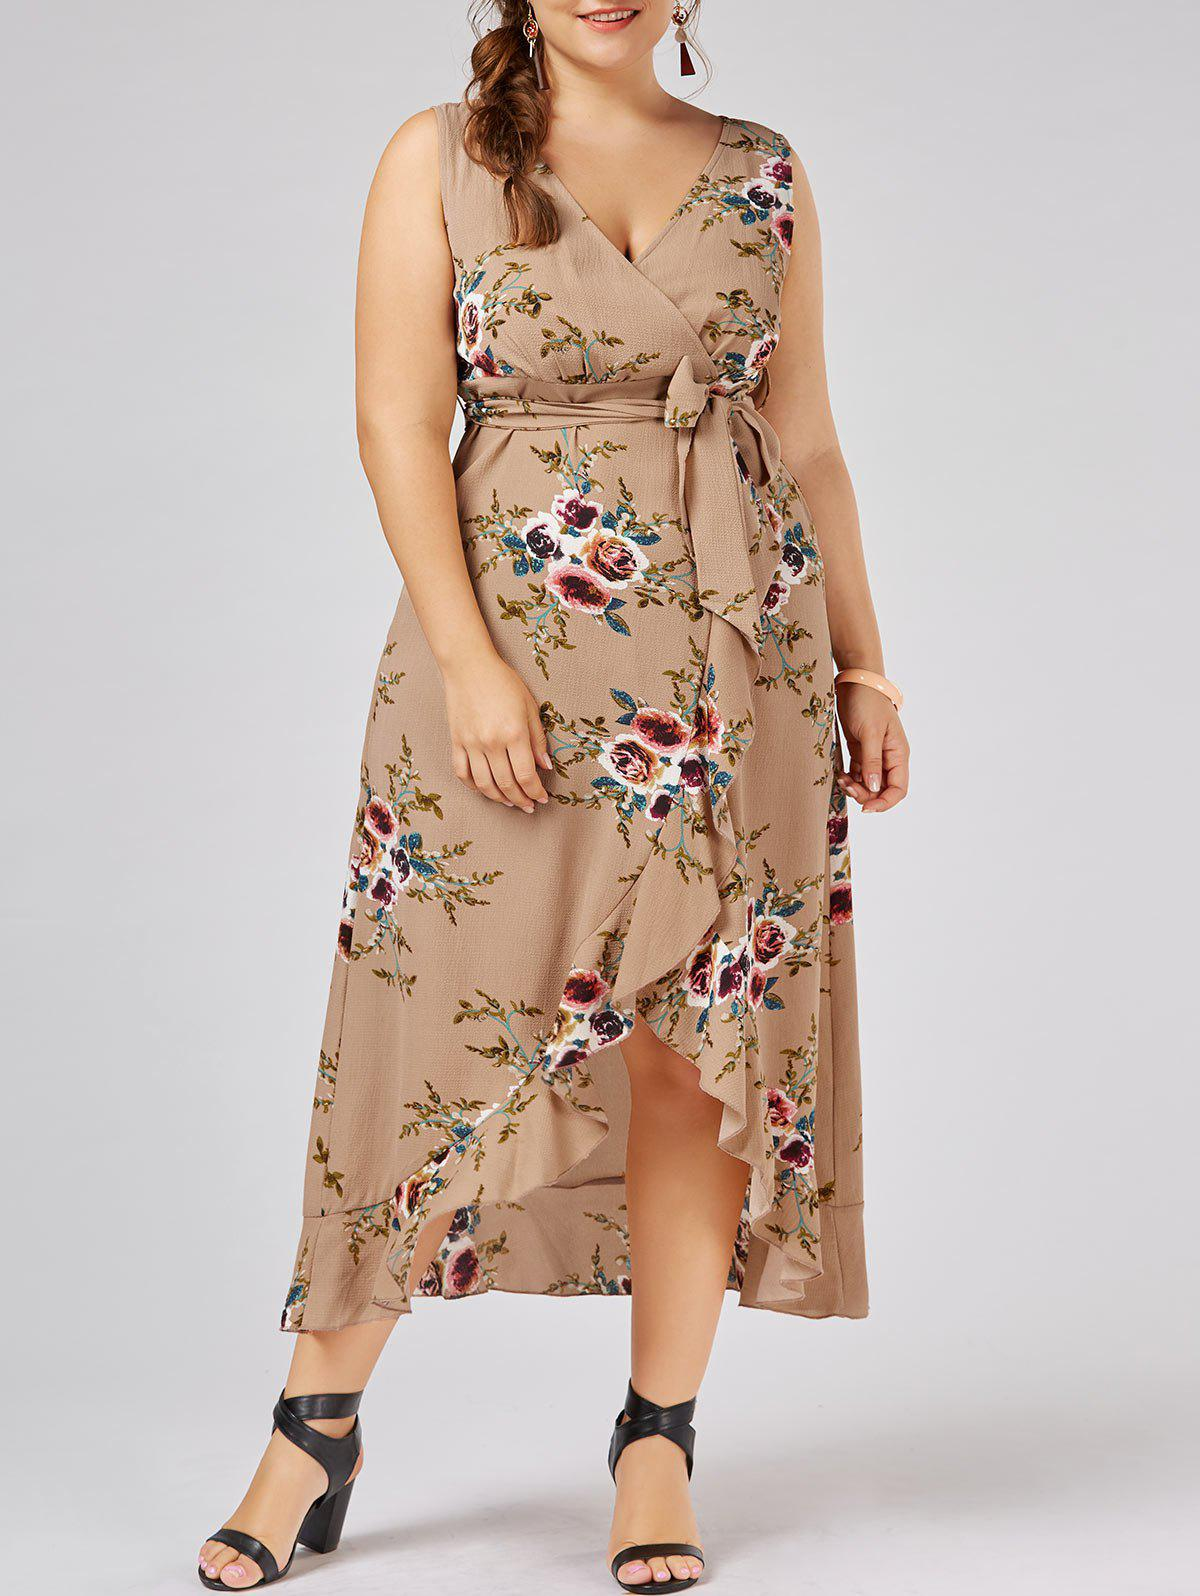 Plus Size High Low Long Floral DressWOMEN<br><br>Size: 2XL; Color: APRICOT; Style: Bohemian; Material: Polyester; Silhouette: A-Line; Dresses Length: Ankle-Length; Neckline: Plunging Neck; Sleeve Length: Sleeveless; Pattern Type: Floral; With Belt: Yes; Season: Summer; Weight: 0.3700kg; Package Contents: 1 x Dress  1 x Belt;